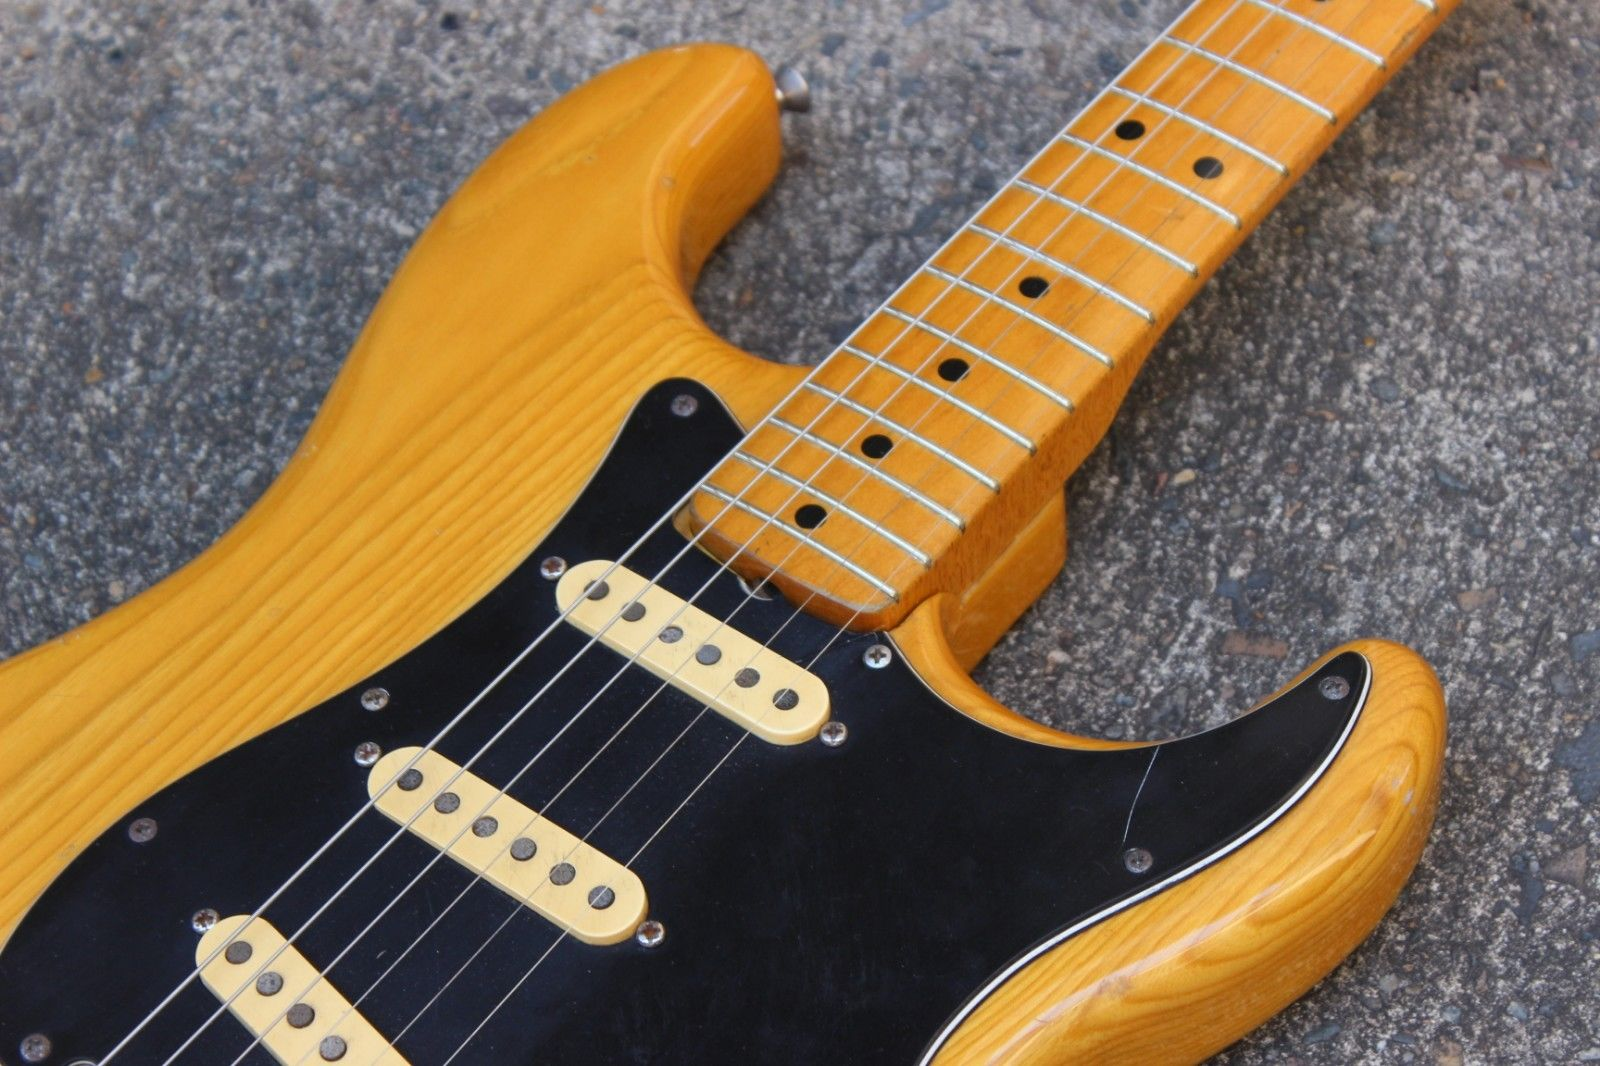 1979 Greco SE-500 Spacy Sound Stratocaster (Natural) MIJ Japan